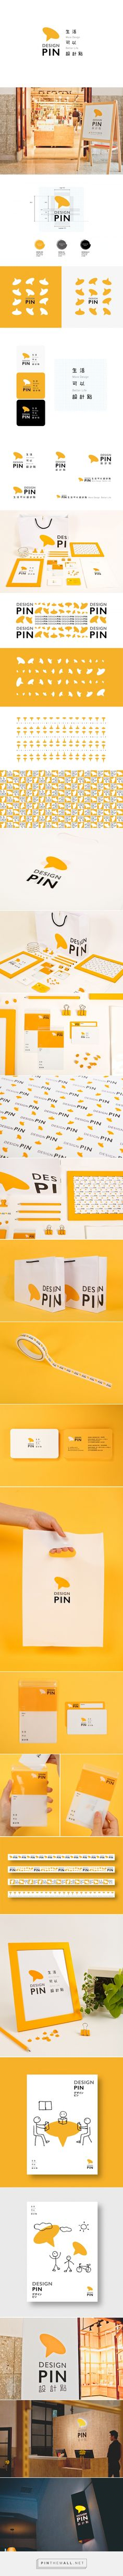 Design Pin|Branding on Behance... - a grouped images picture - Pin Them All